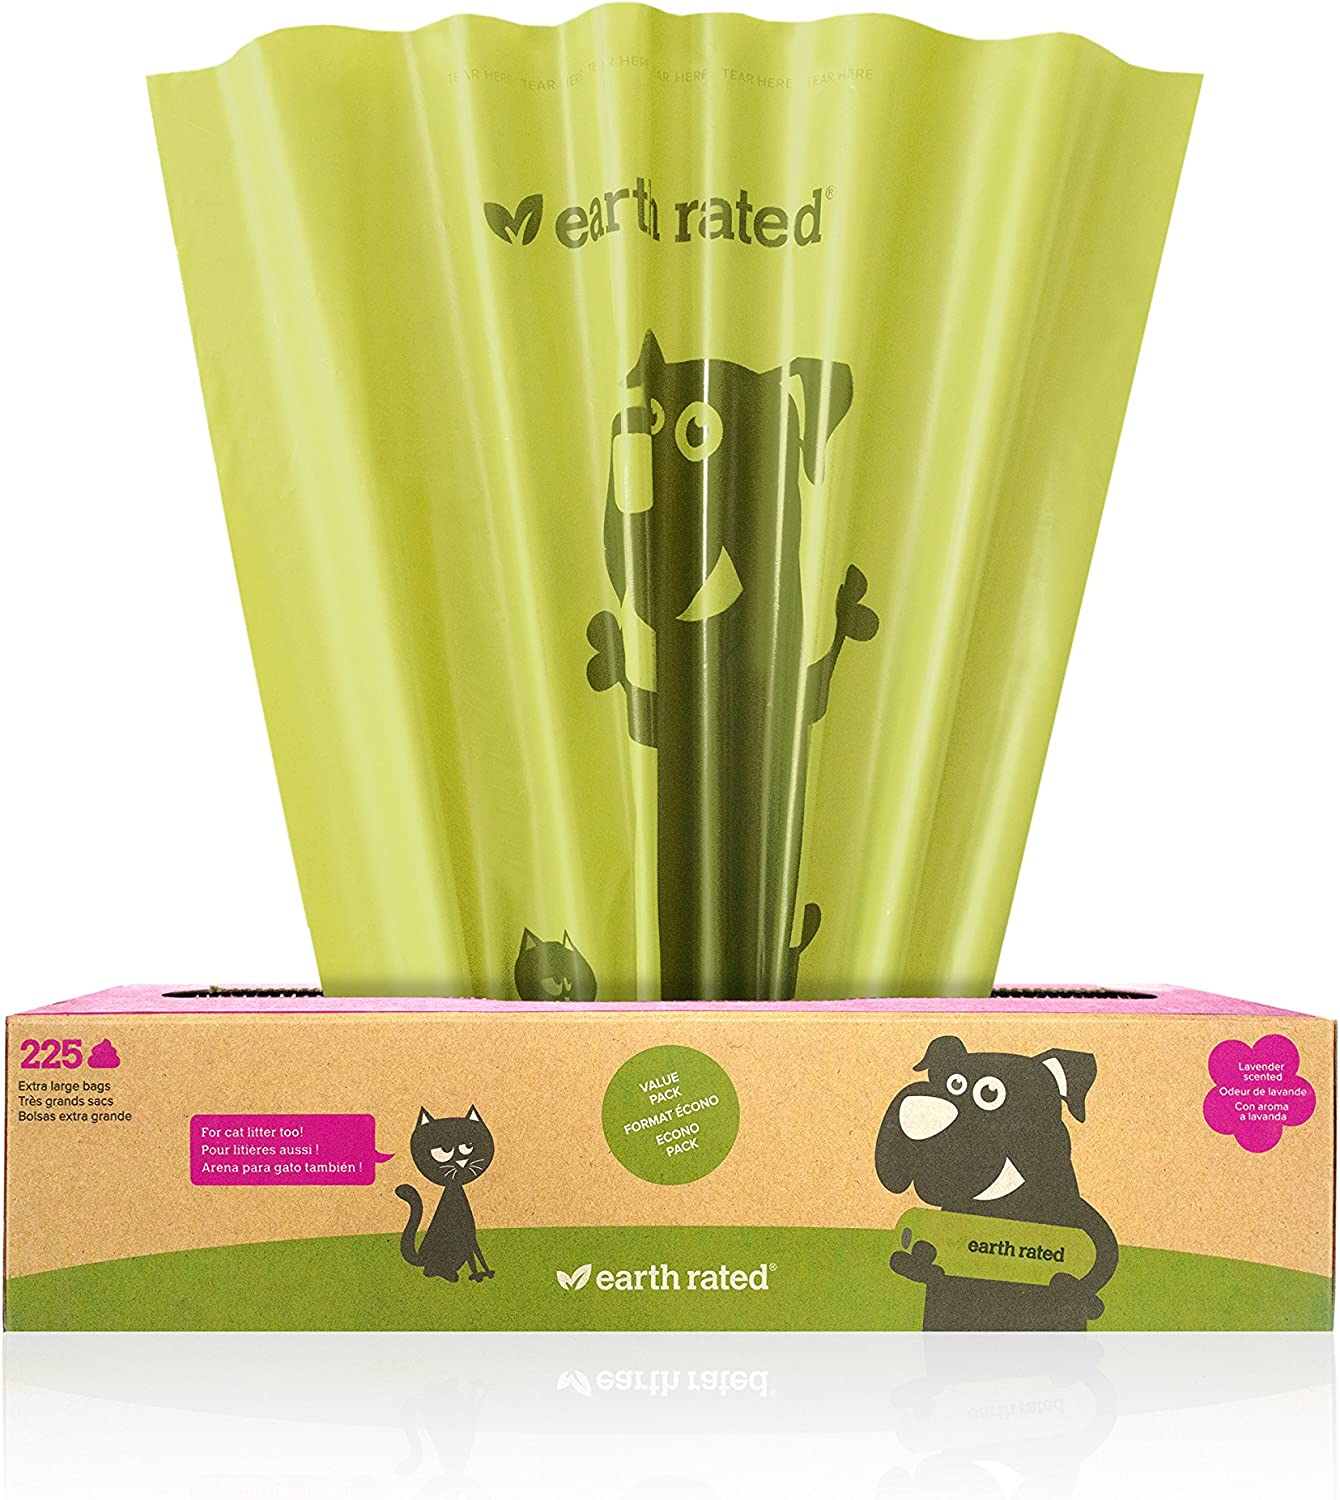 Earth Rated Extra Large Poop Bags, Poop Bags for Large Dogs, 225 Bags on a Large Single Roll, Each Cat Poop Bag Measures 11 x 13 inches